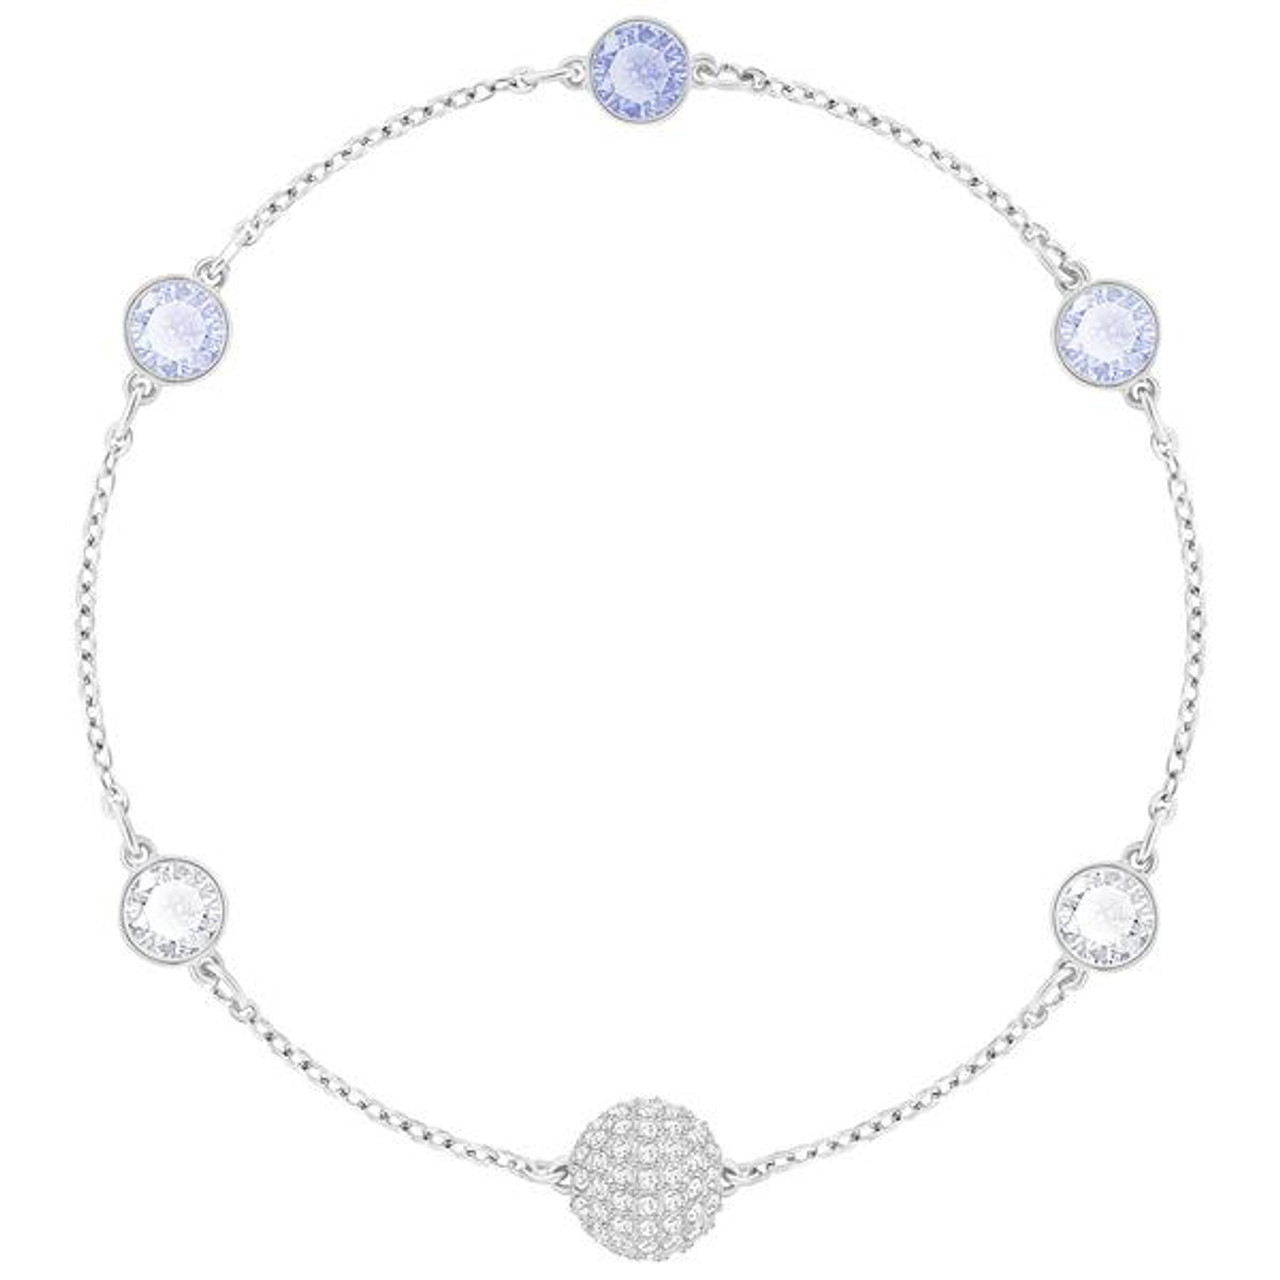 bd419a2c6 Swarovski Remix Collection Timeless Bracelet with Blue Crystals - Best  Accents